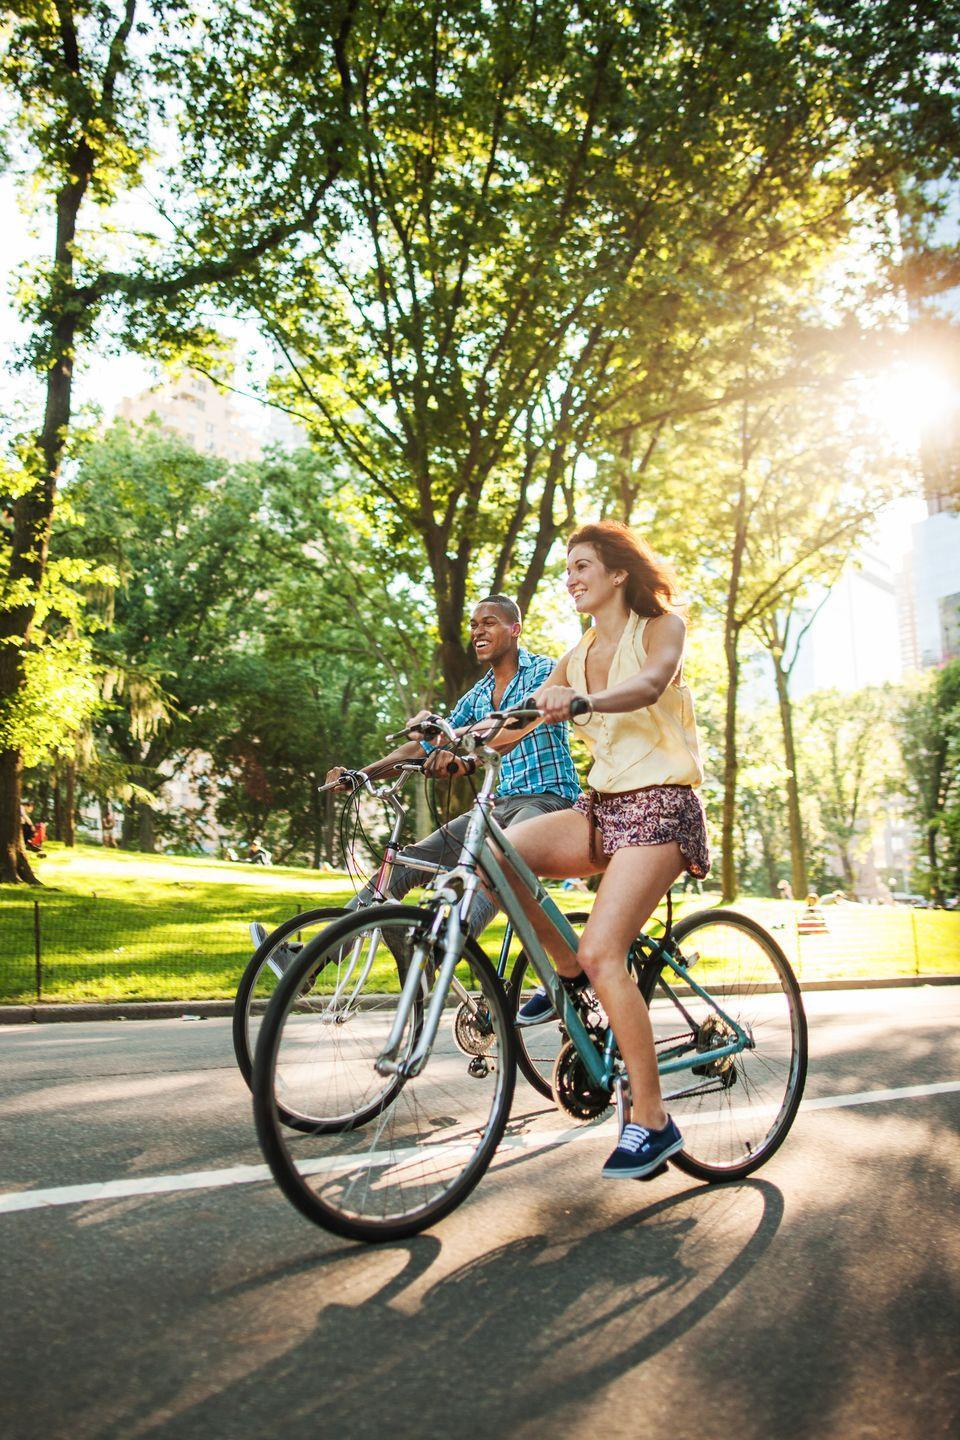 """<p>Travel throughout your hometown via bikes for the day, stopping off for lunch and exploring areas you haven't been to before.</p><p><a class=""""link rapid-noclick-resp"""" href=""""https://www.amazon.com/Zacro-Cover-BS031-Extra-Bicycle/dp/B01H71AZ36/?tag=syn-yahoo-20&ascsubtag=%5Bartid%7C10050.g.805%5Bsrc%7Cyahoo-us"""" rel=""""nofollow noopener"""" target=""""_blank"""" data-ylk=""""slk:SHOP BIKE SEAT COVERS"""">SHOP BIKE SEAT COVERS</a></p>"""